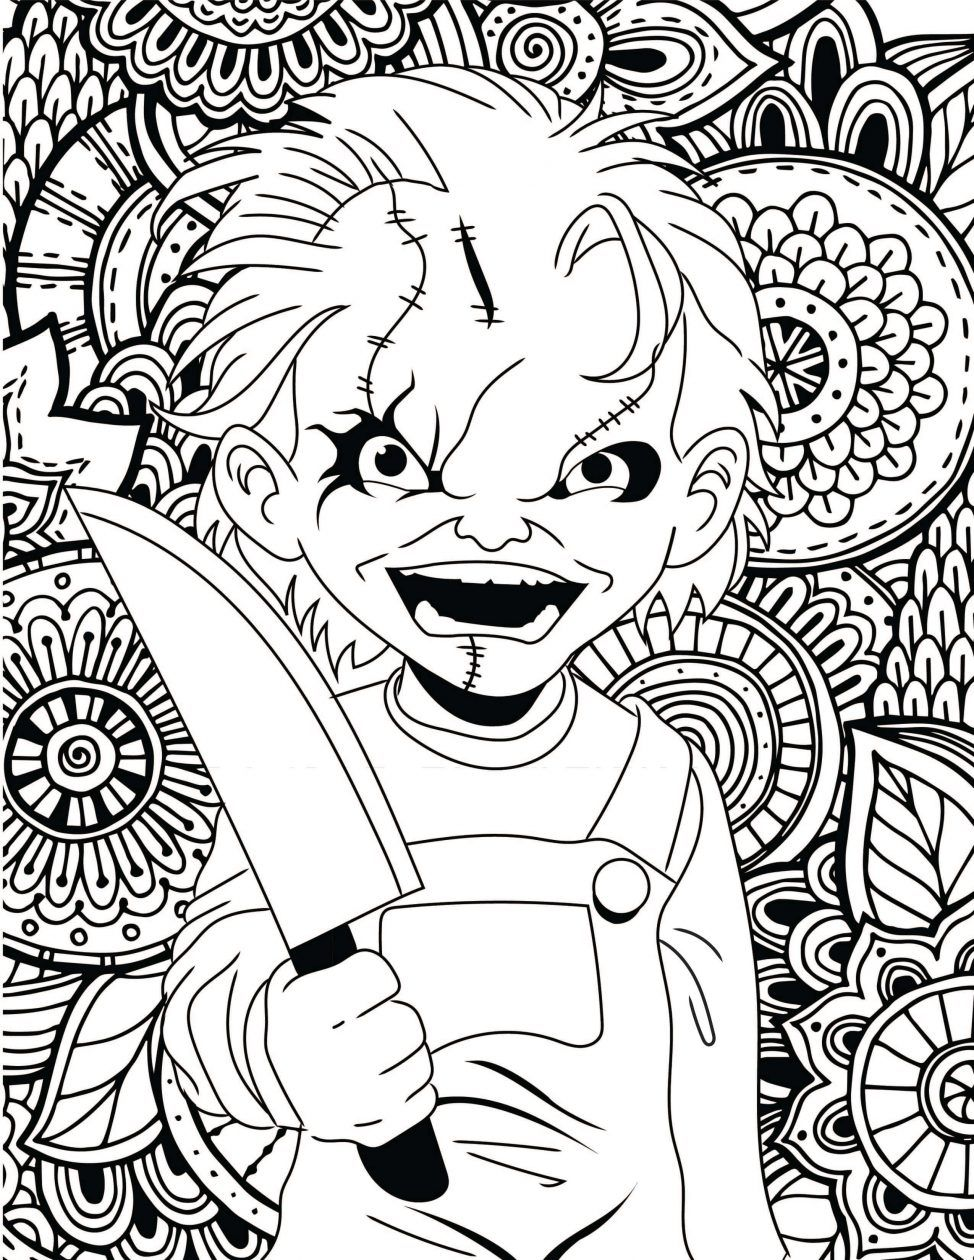 Little House Horror Halloween Coloring Pages - Print Color Craft